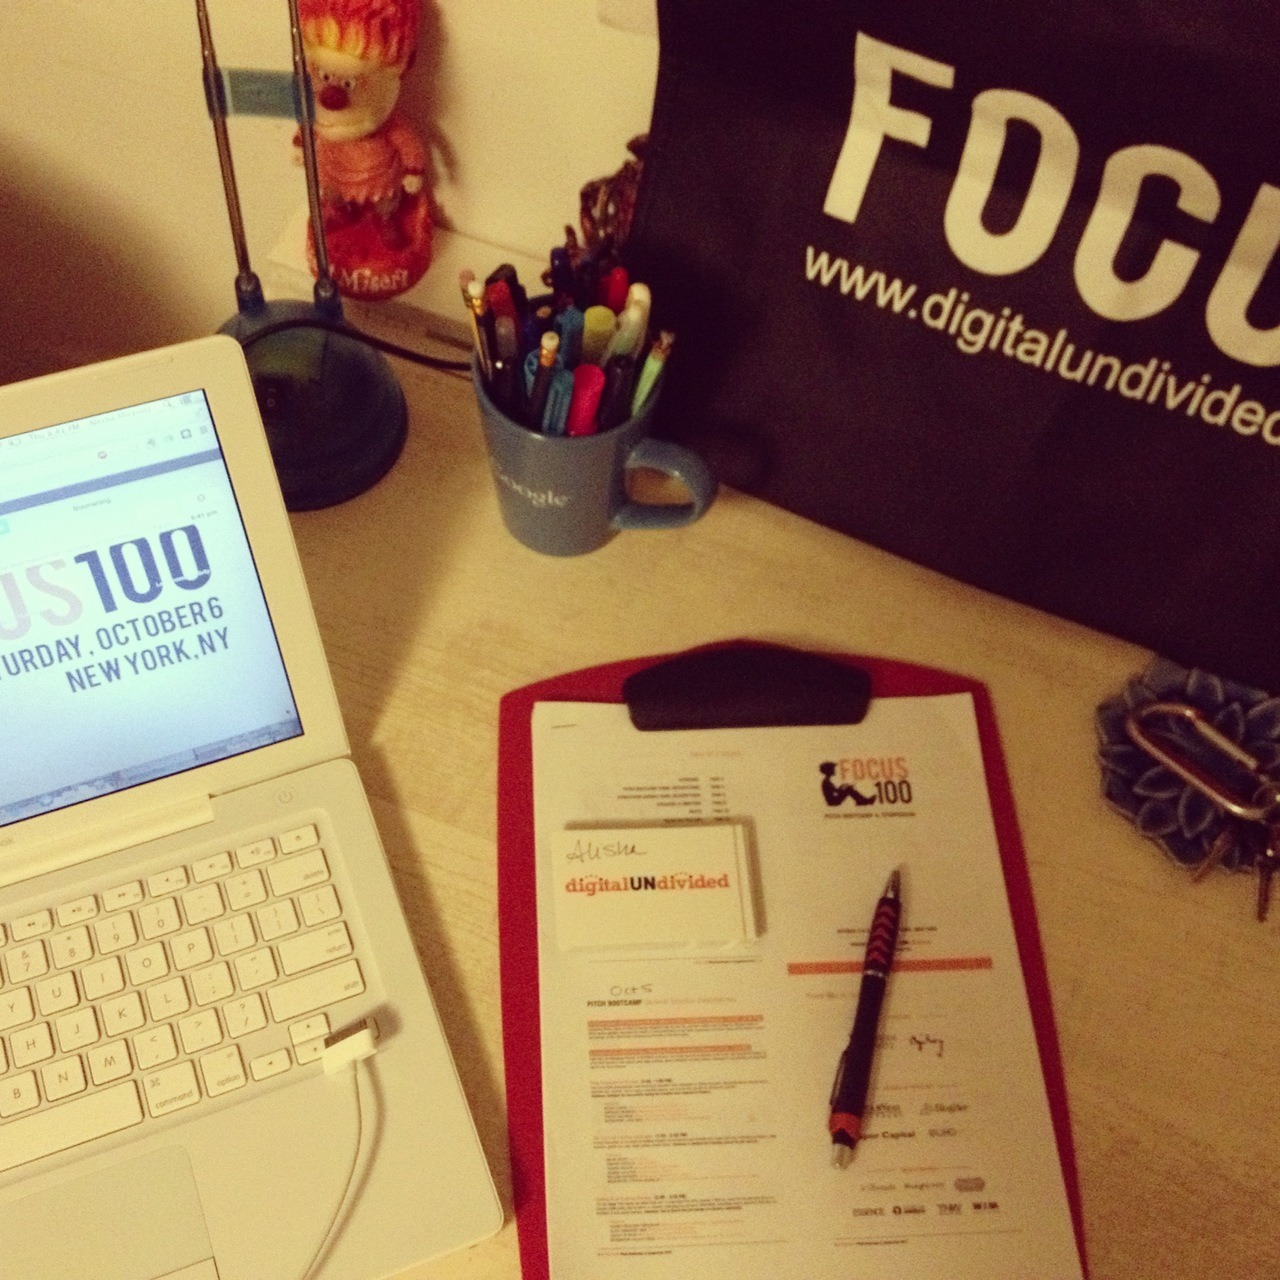 #FOCUS100 is tomorrow!  We're excited! We're pumped! We're dedicated! The #FOCUS100 symposium is where tech startups led by black women can connect with industry innovators, brand managers, and digital influencers. The event consists of a half-day pitch bootcamp, followed by a full-day symposium featuring panels, valuable mentorship sessions and a pitch competition with top angel investors and VCs. #FOCUS100 is October 5-6th in New York City.  Conference Prep: Bring your laptop/iPad/smartphone and chargers. There will be power strips! Bring a copy of your pitch deck for print and electronic. Come prepared with questions for your mentors and an open mind to receive constructive feedback. Eat And Meet: Join me at the closing cocktail reception on Saturday evening, sponsored by BlogHer and Ogilvy. Ask Mayor Cory Booker A Question! We're working with Waywire to solicit questions for Mayor Cory Booker from #FOCUS100 attendees. Just download the app, or go the site and upload your video and tag it #FOCUS100. Be Social Check in to #FOCUS100 on Foursquare. We created a Foursquare venue for #FOCUS100.  Our official hashtag is #FOCUS100. Follow us on Twitter and Facebook, and tag photos on Instagram when you arrive on Friday and Saturday.